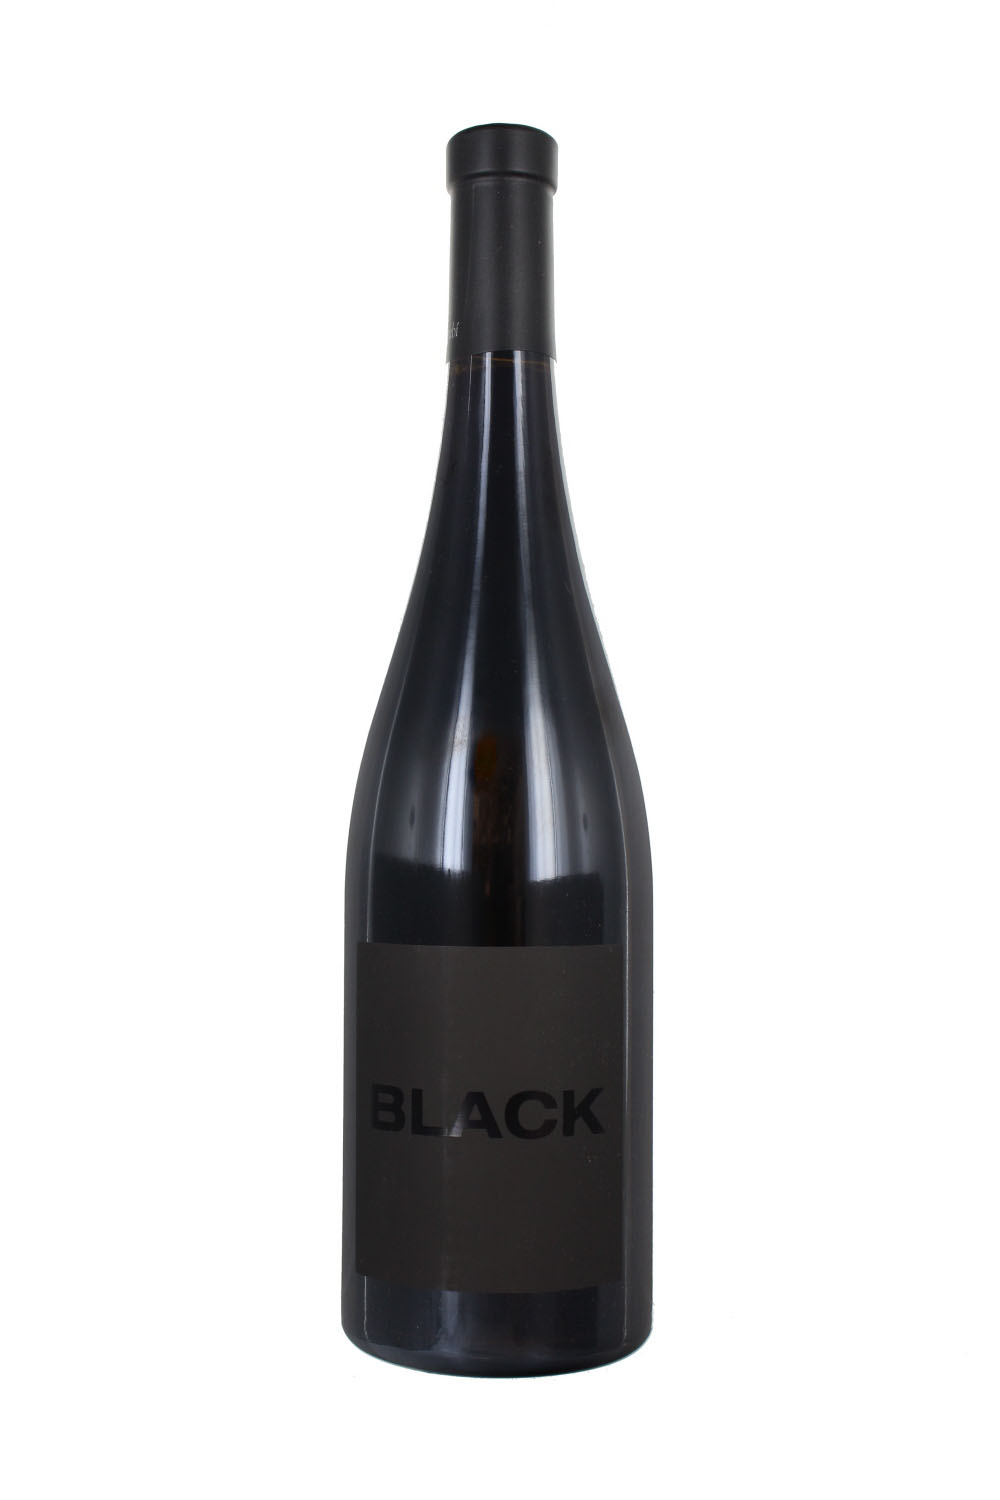 2017 HMR Black, Garnacha, DO Penedes, Mont Rubi (Case)